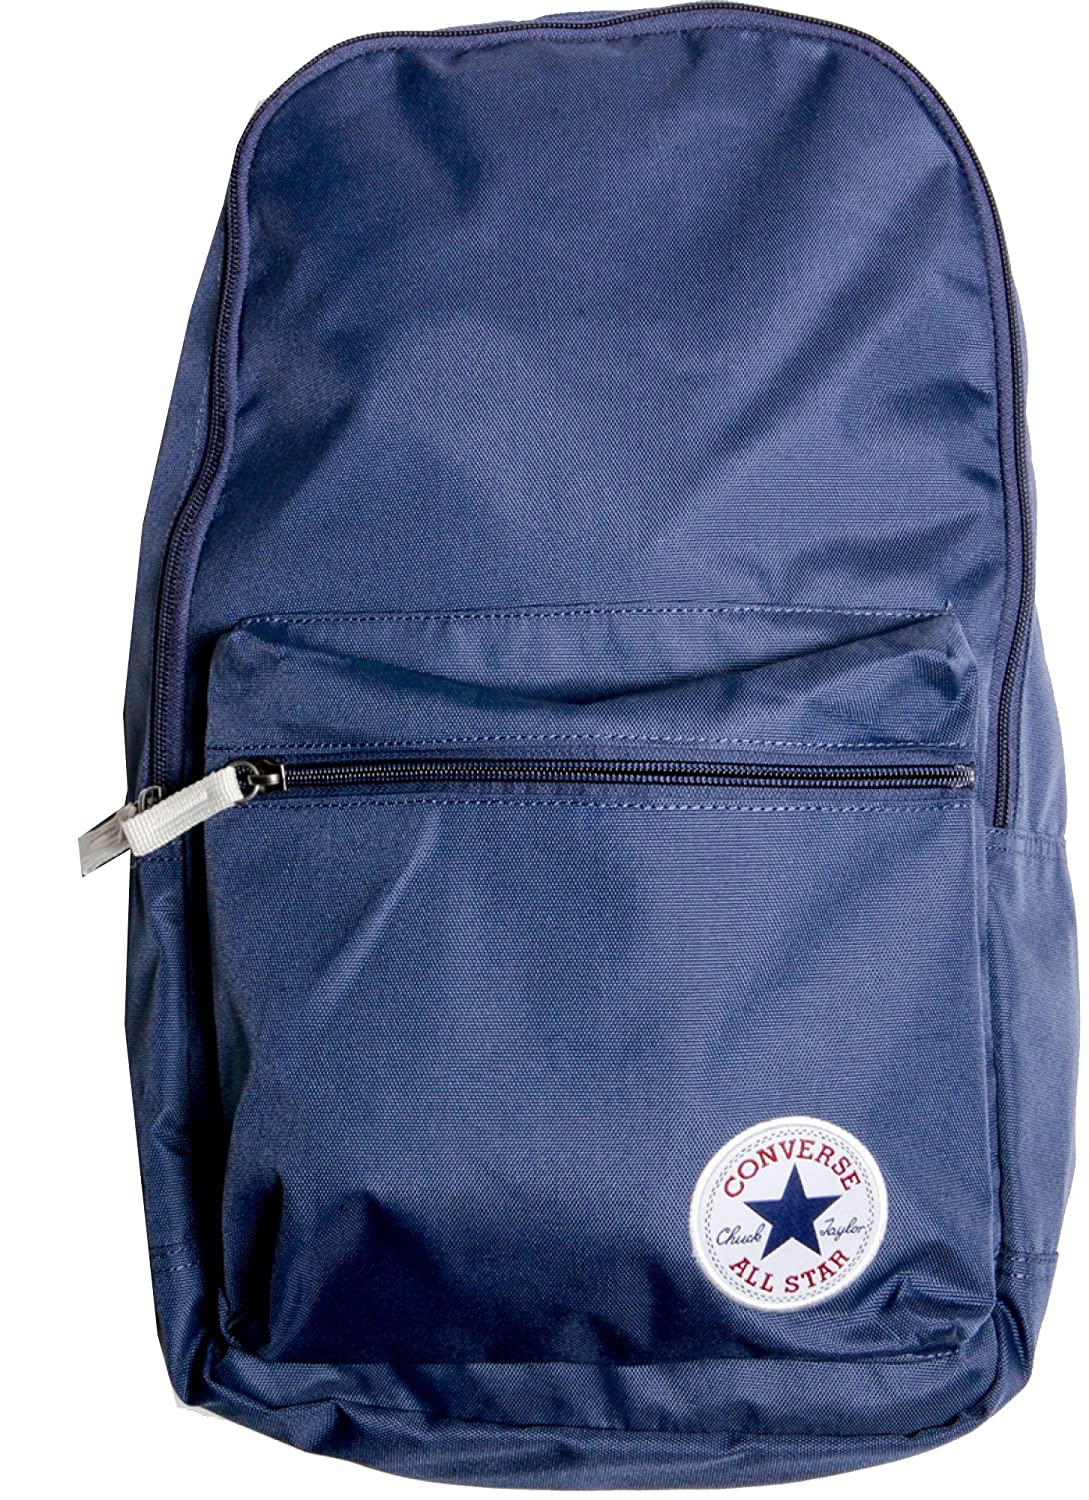 ba4dfd7371e Converse 10003329-a Backpack, Blue, Size S  Amazon.co.uk  Sports   Outdoors